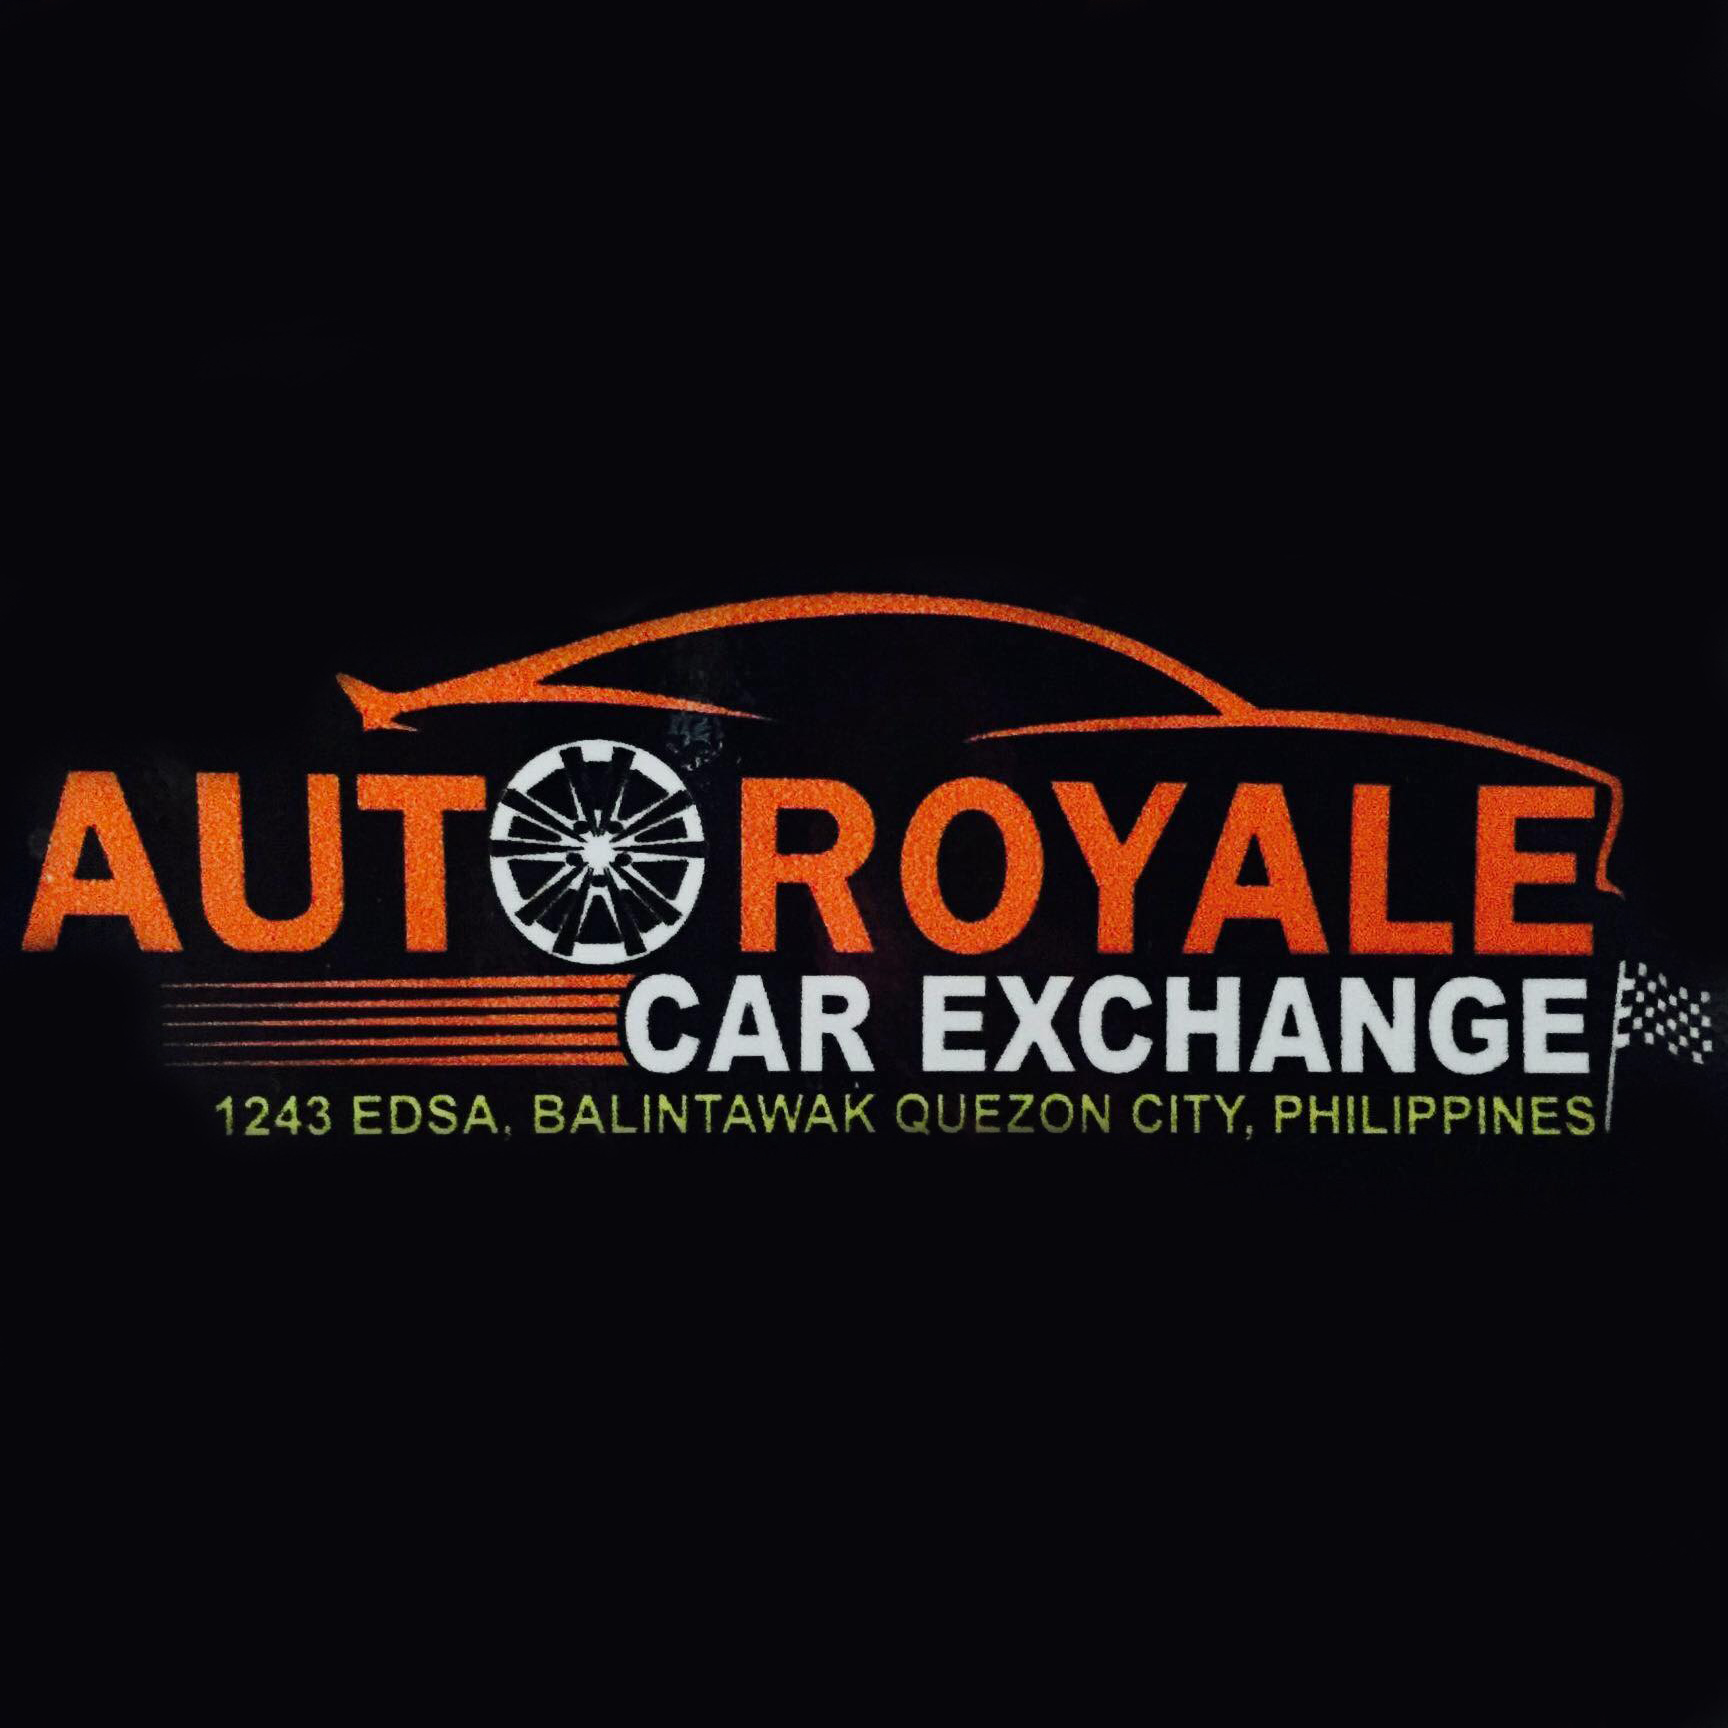 Auto Royale Car Exchange - Patrick